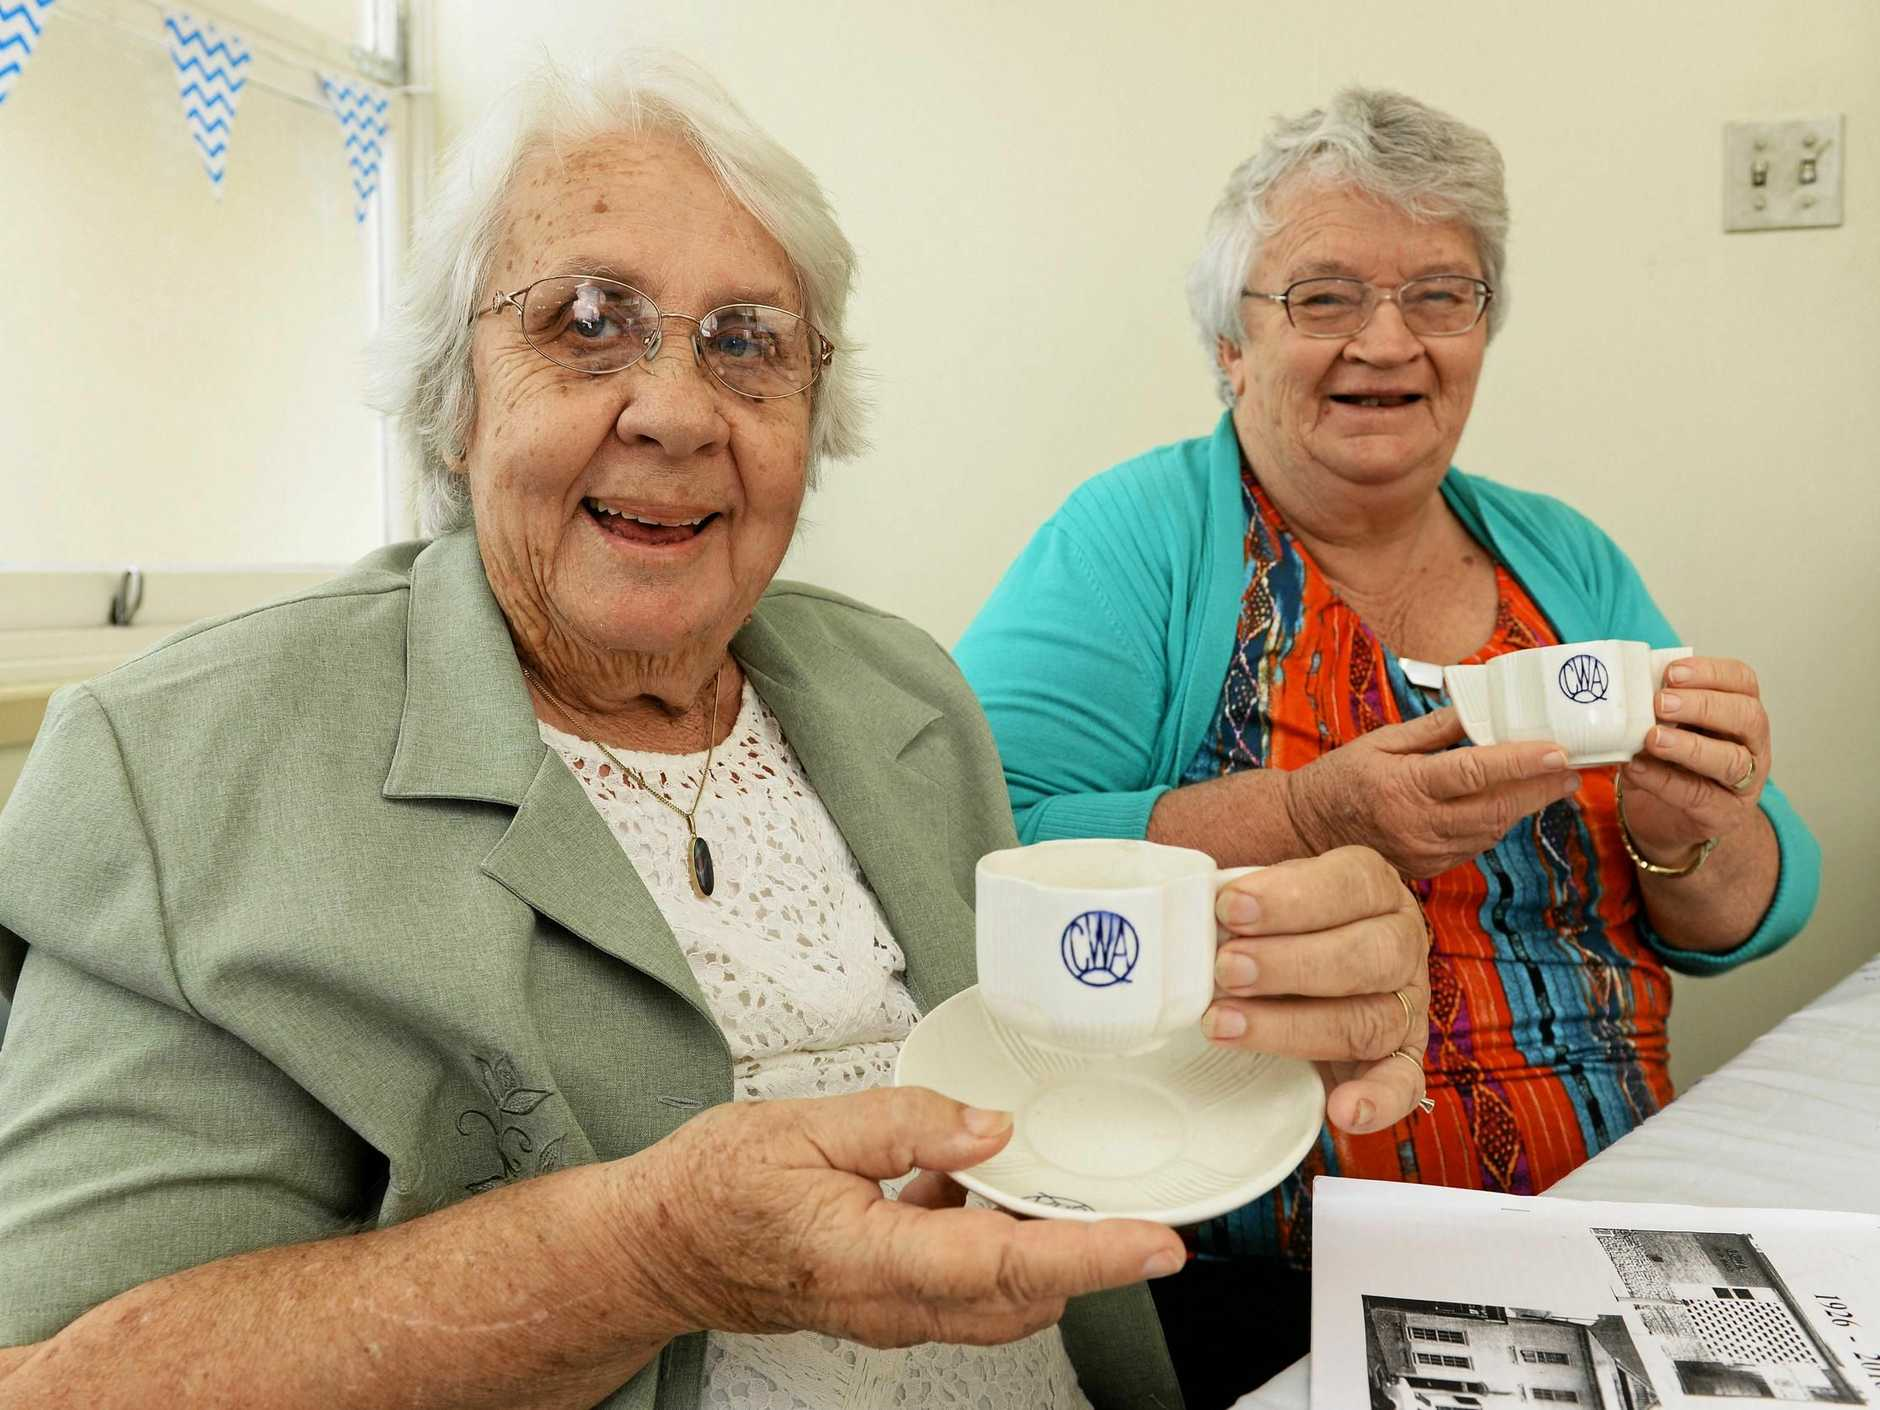 Val Shelton and Lois Spresser at the CWA Ipswich 90th anniversary on Thursday.